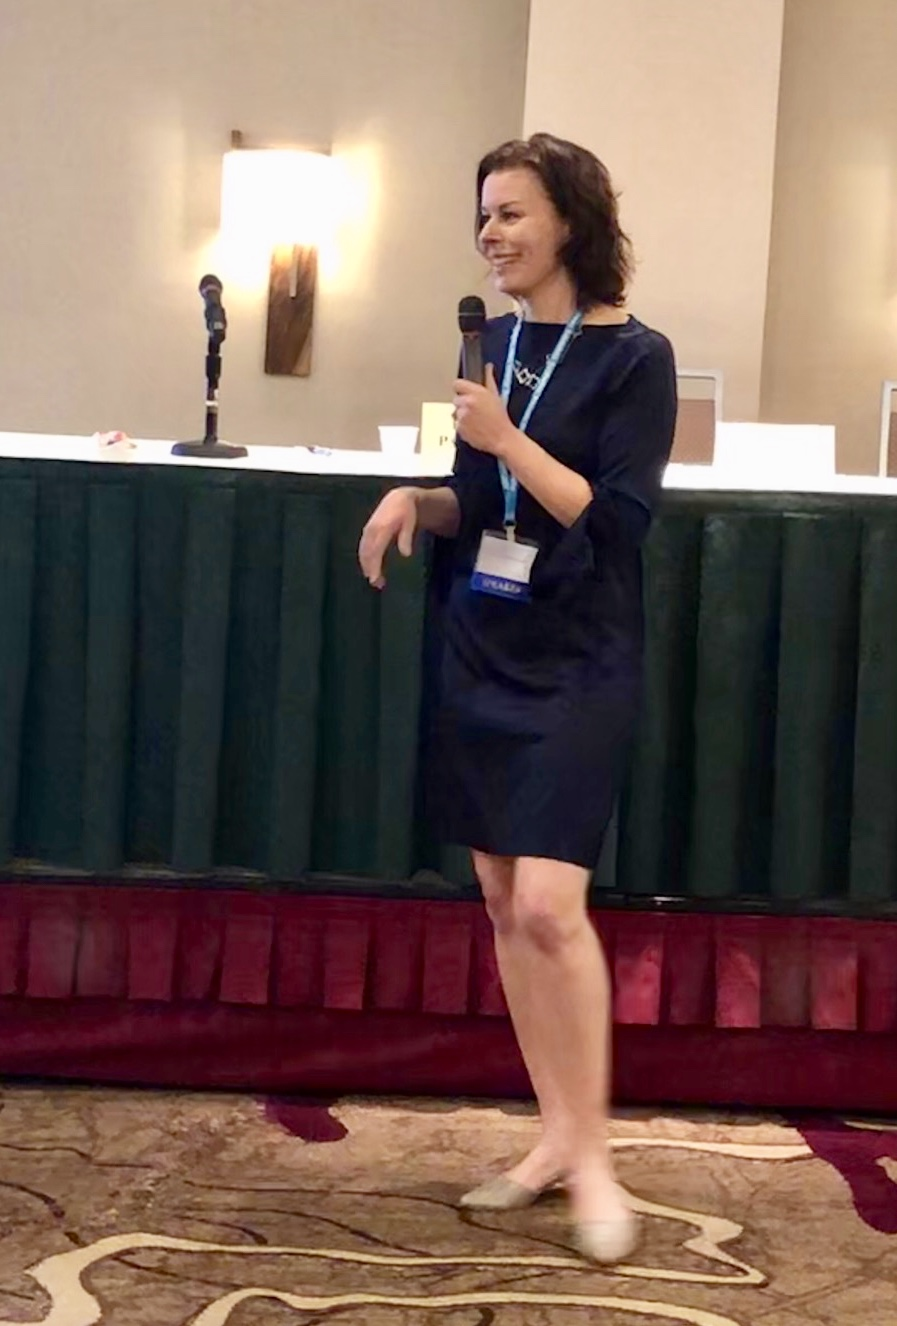 Rebecca Parish, MD, Speaks to the CA State Bar Association